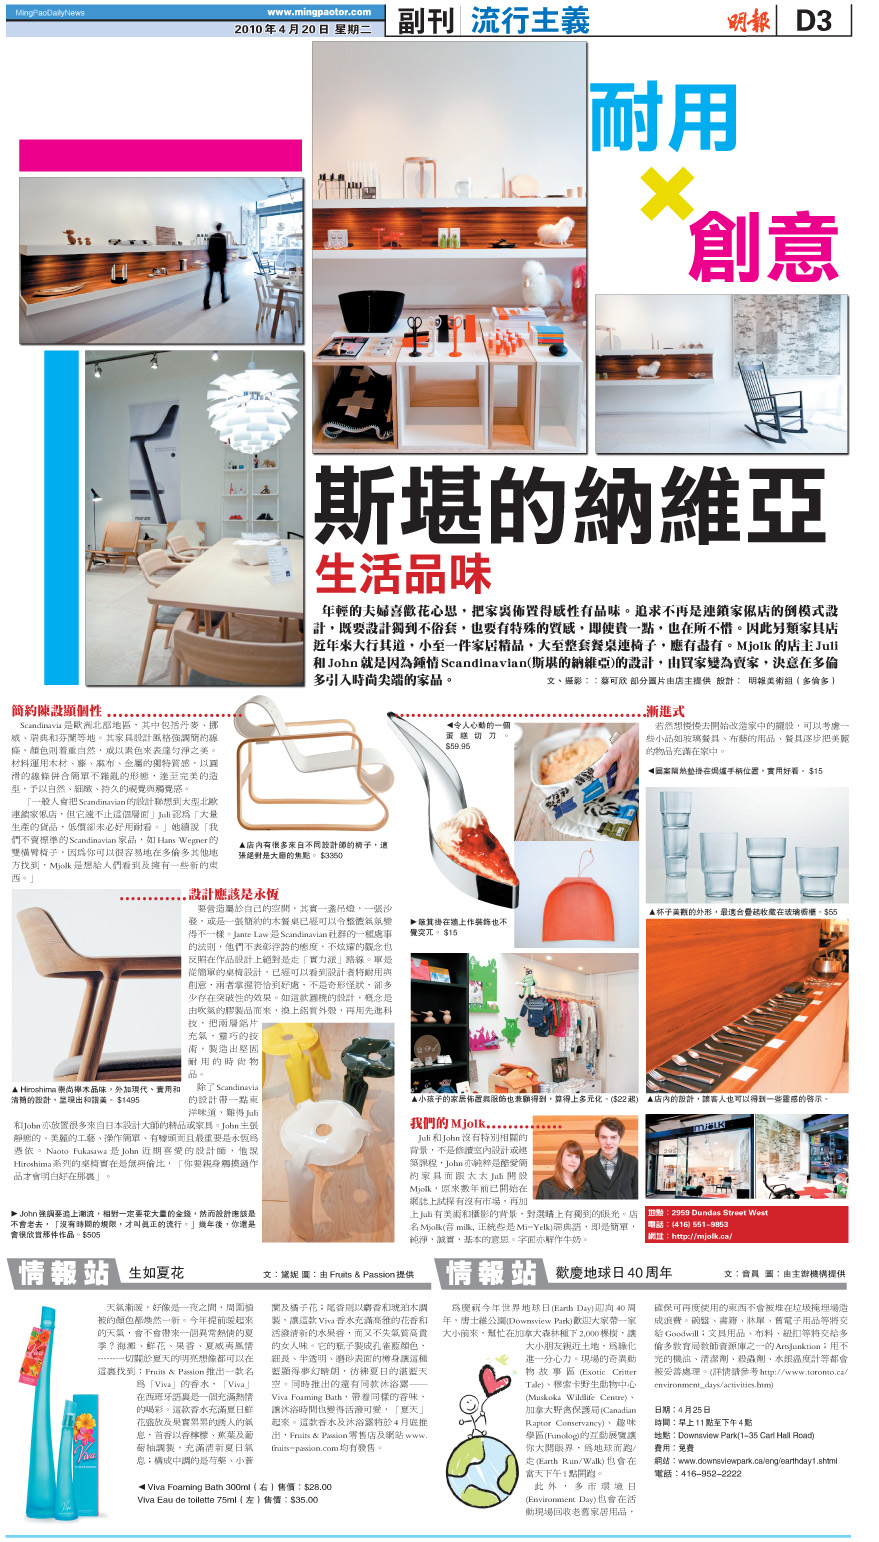 Mjolk in Ming Pao Daily Toronto